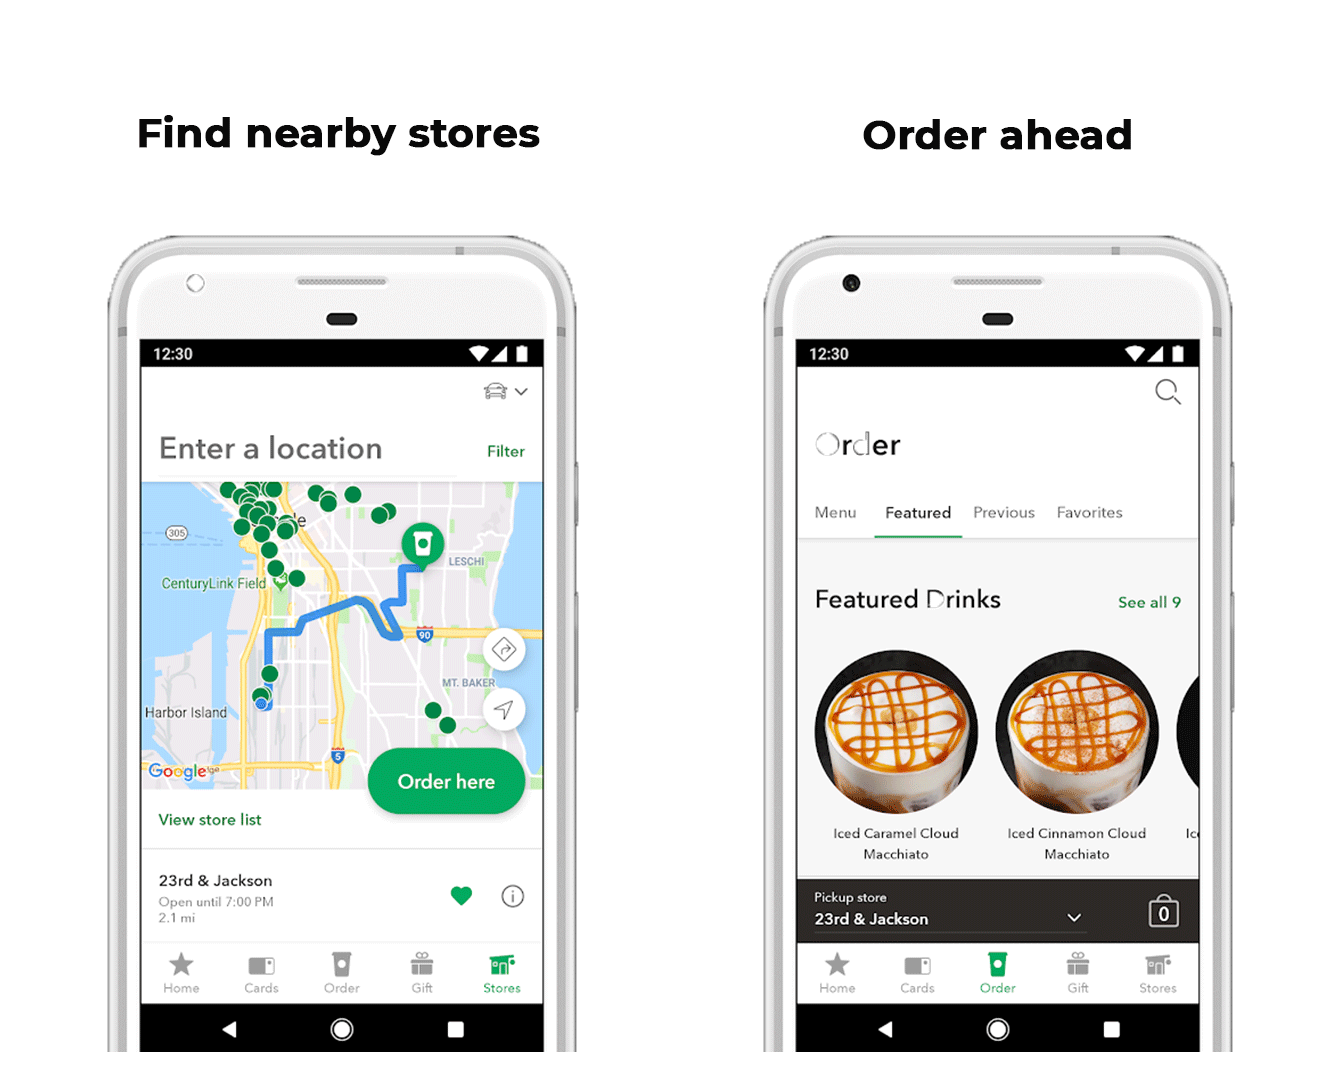 Fast-food restaurant automation at Starbucks: order ahead, pay for an order, enter a pickup location, and pick up your order